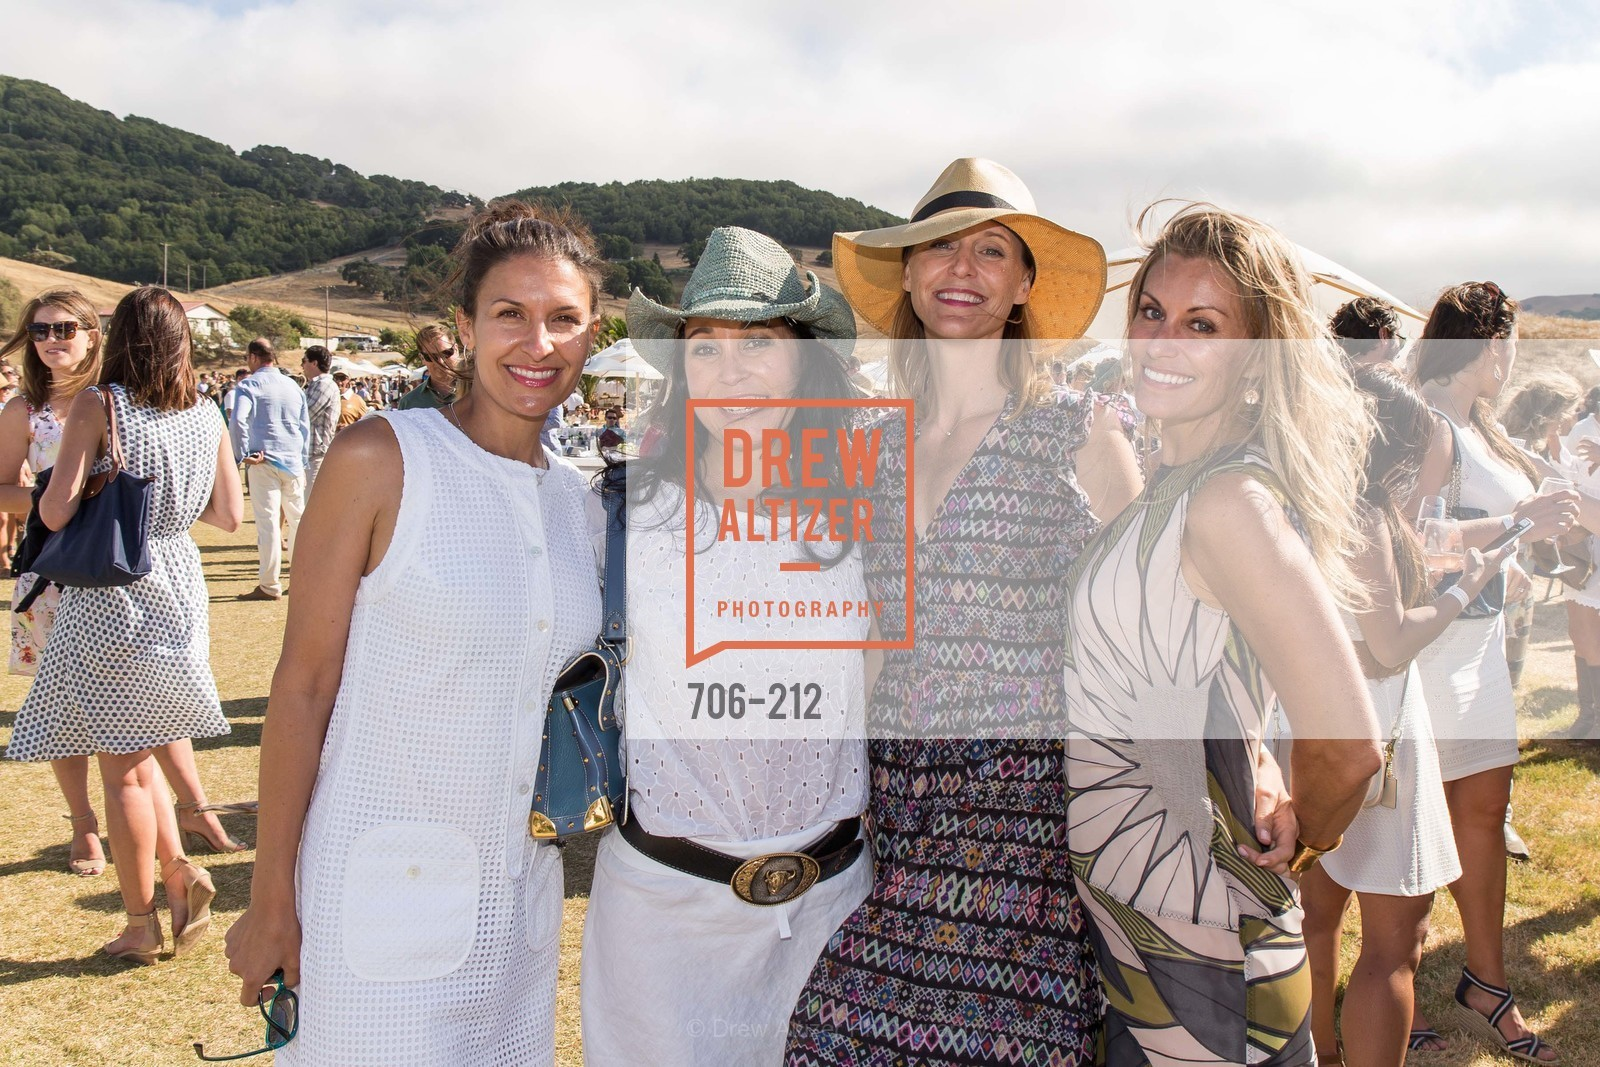 Dayna Desmond, Michelle Molfino, Kristen Evans, Rachel Brewster, Stick & Ball Oyster Cup Polo Tournament, Cerro Pampa Polo Club, July 25th, 2015,Drew Altizer, Drew Altizer Photography, full-service agency, private events, San Francisco photographer, photographer california